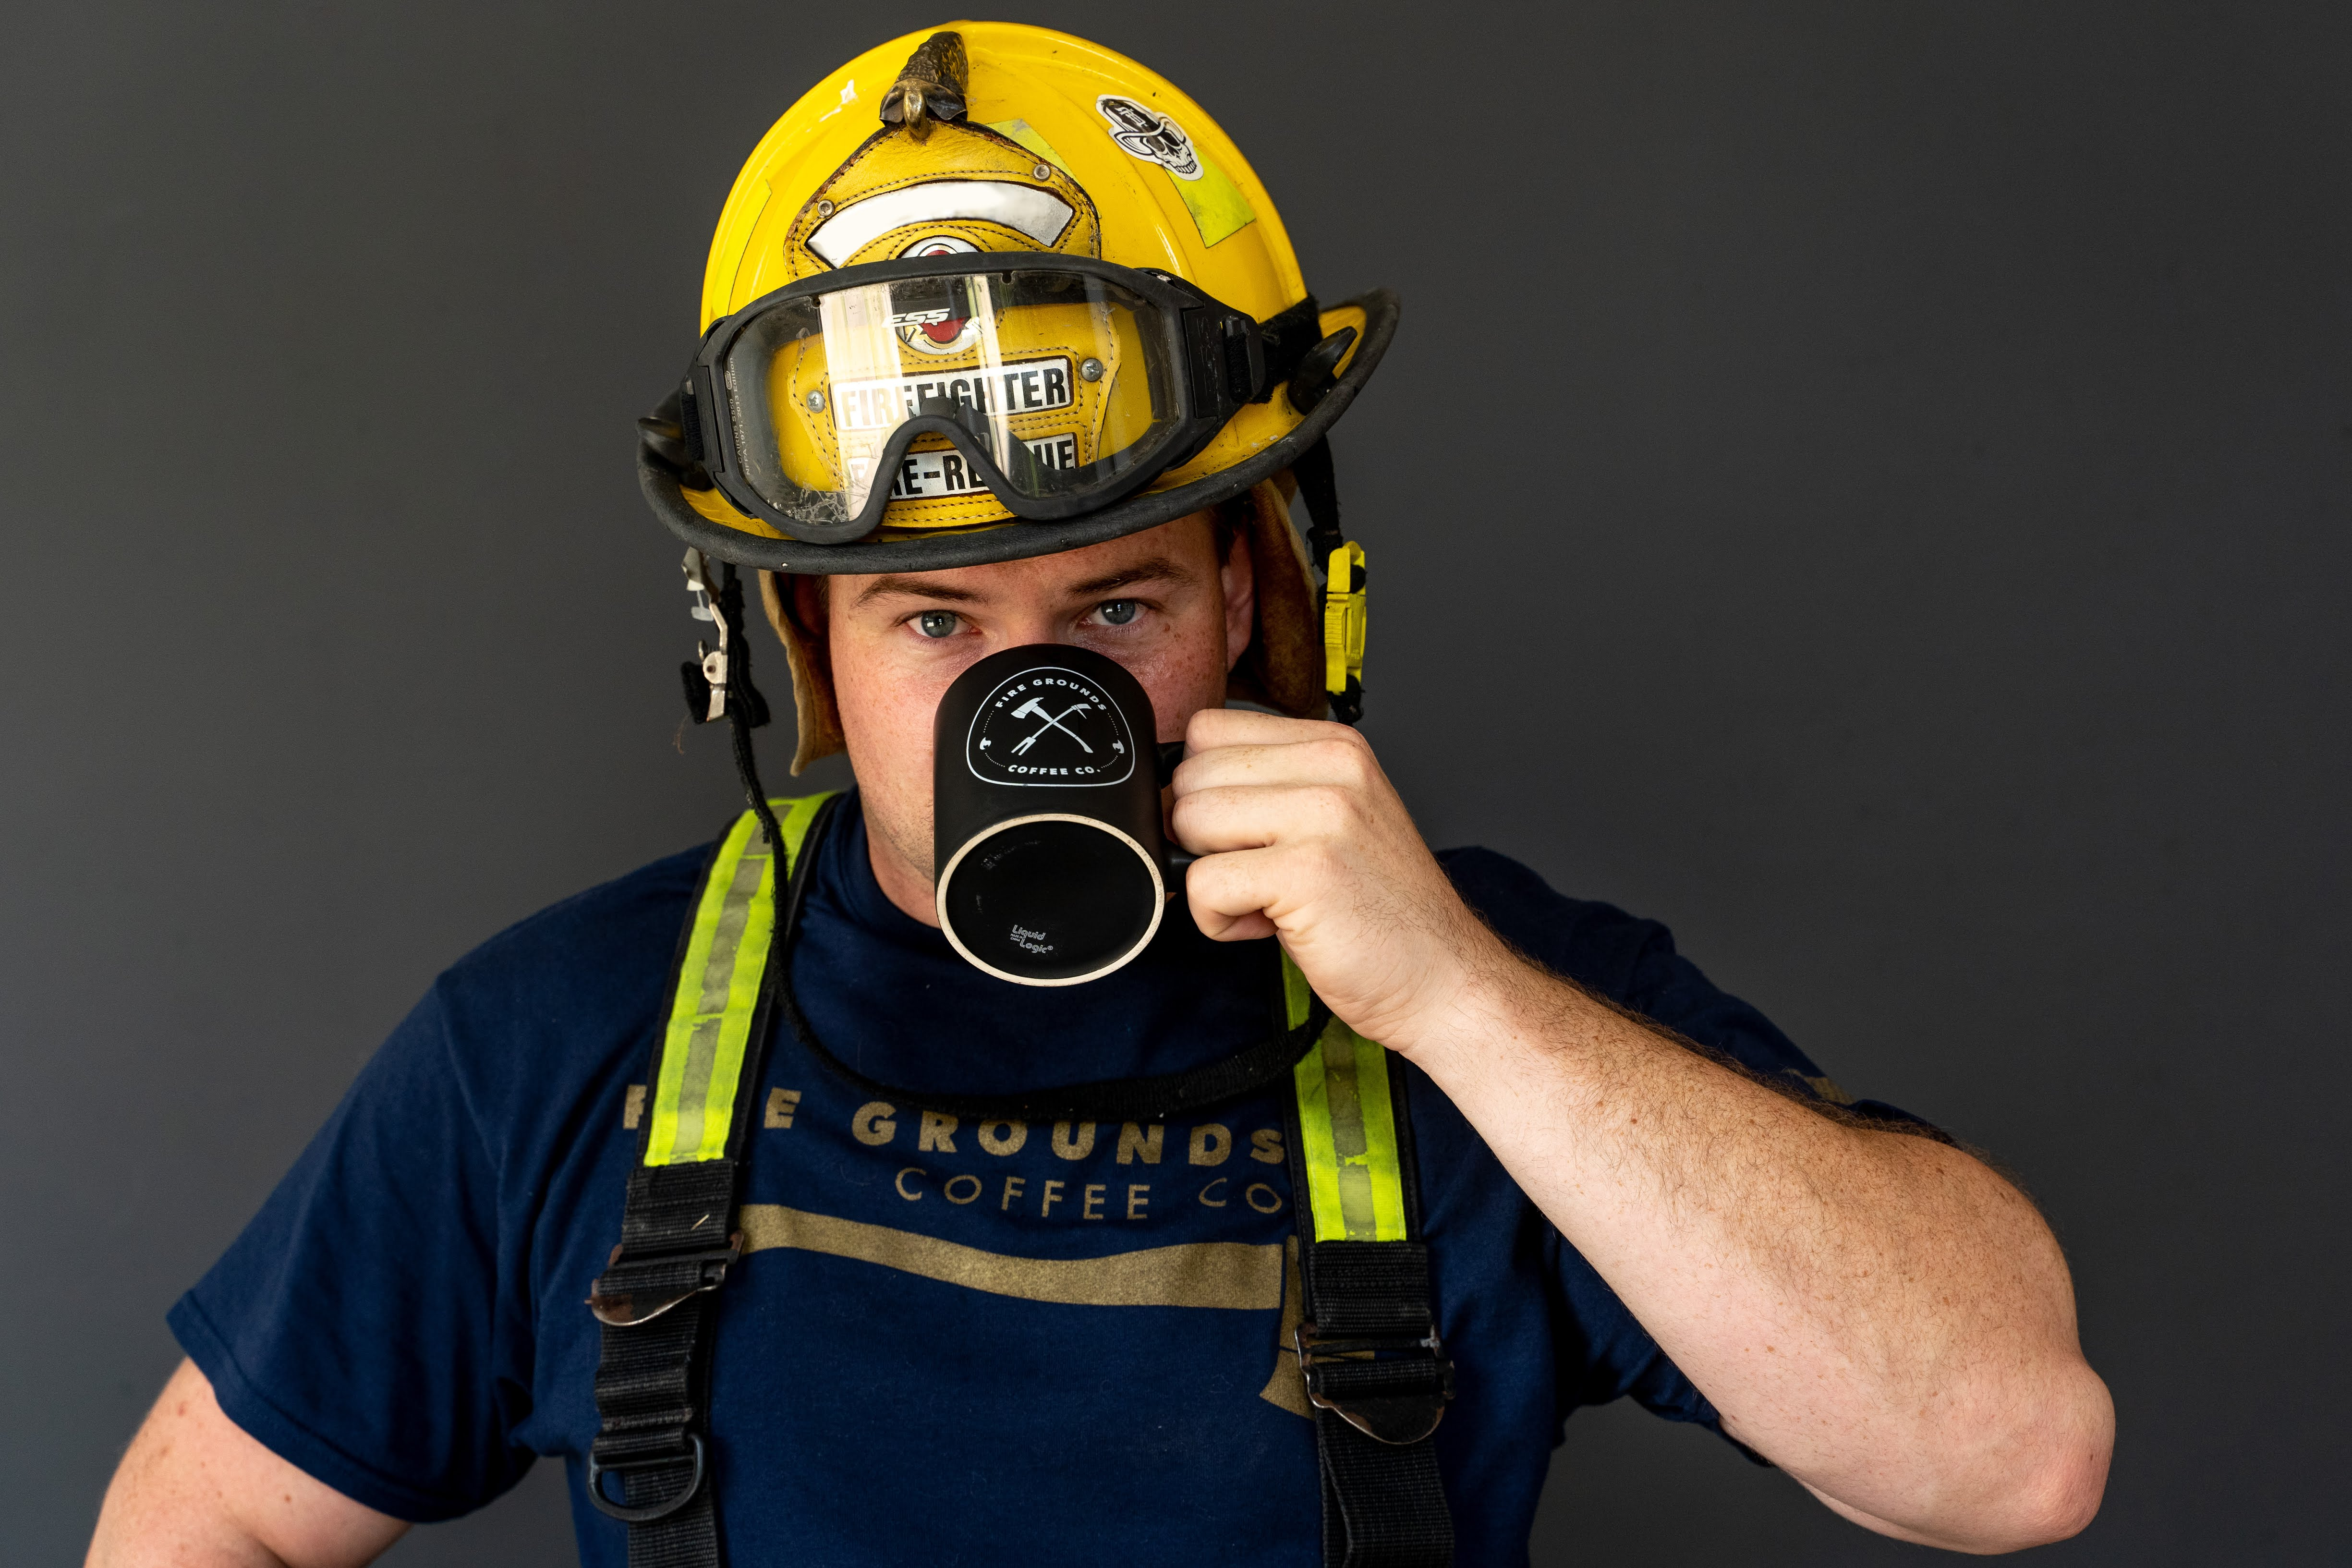 Supplier Spotlight! Fundraise with Fire Grounds Coffee Company